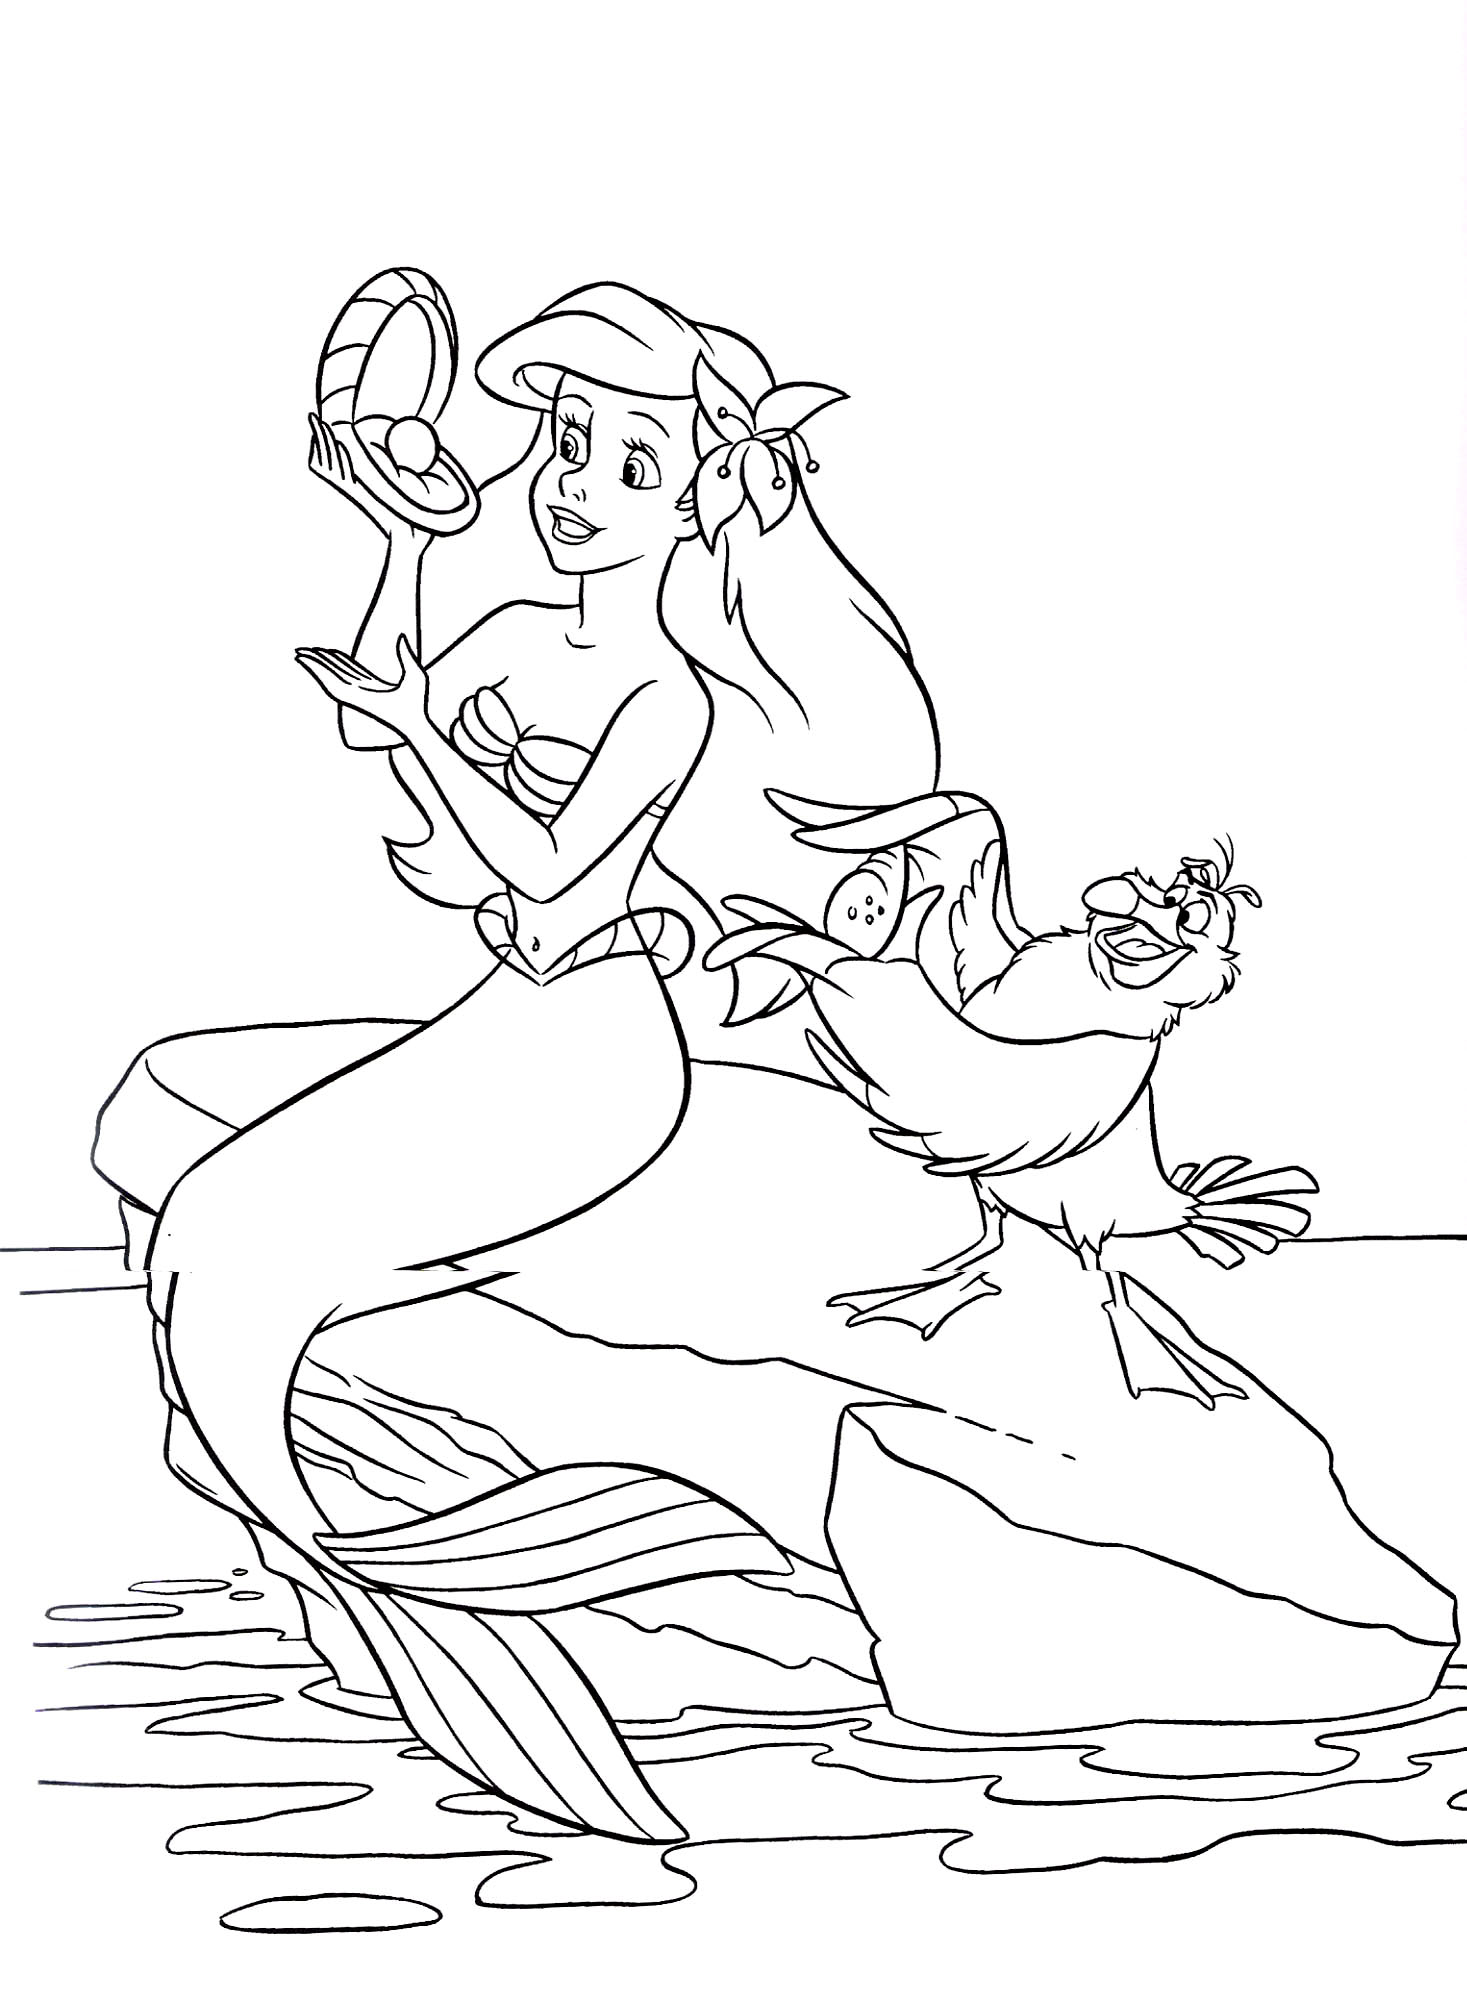 Coloring pages printable mermaid